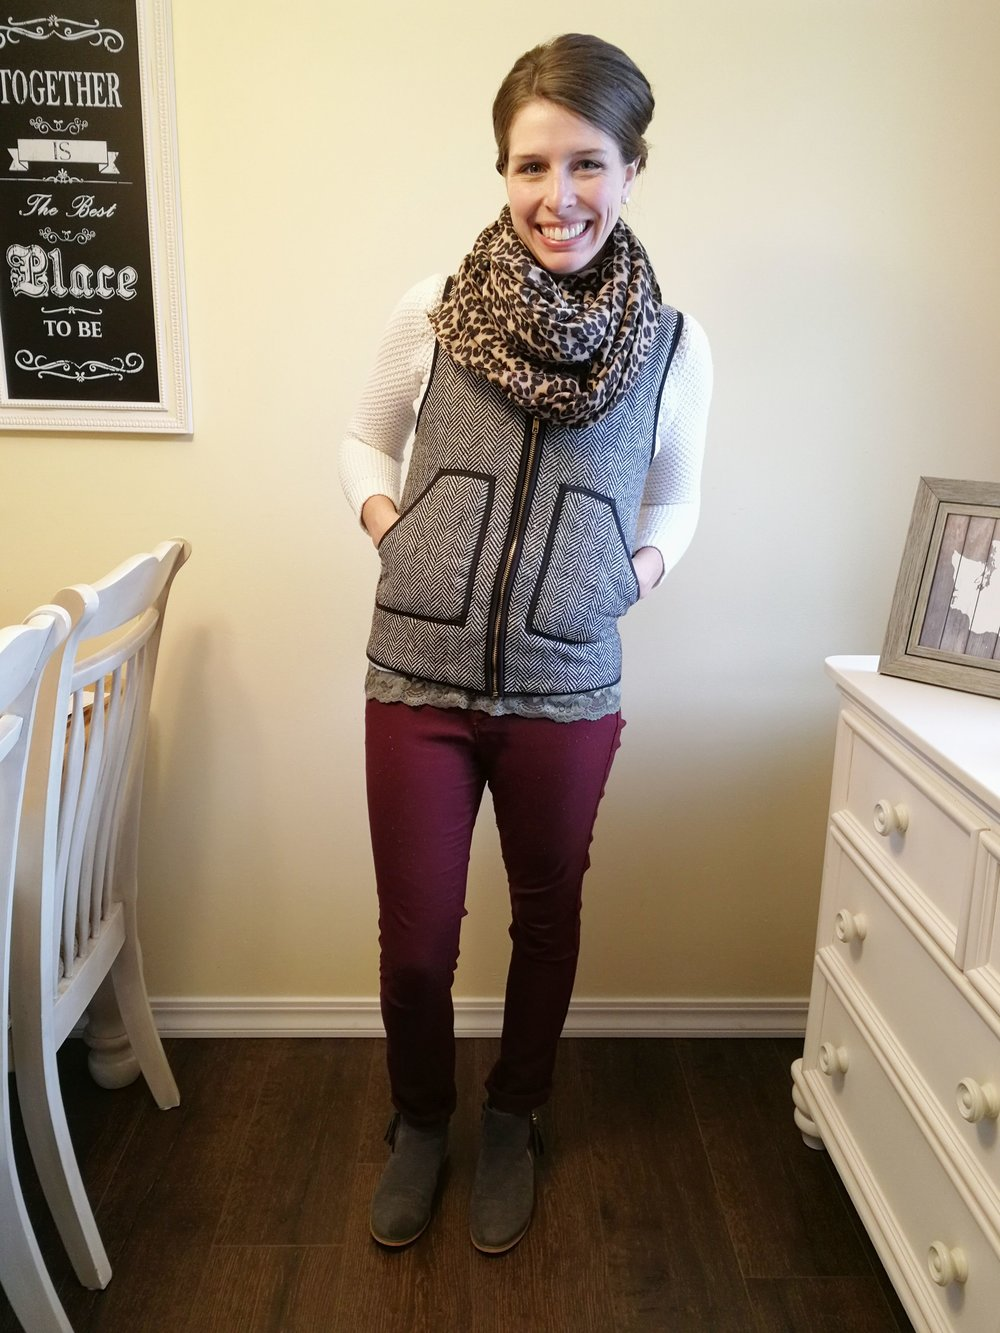 Knit Sweater + Lace Cami Underlayer + Herringbone Quilted Vest + Leopard Scarf + Ankle Boots